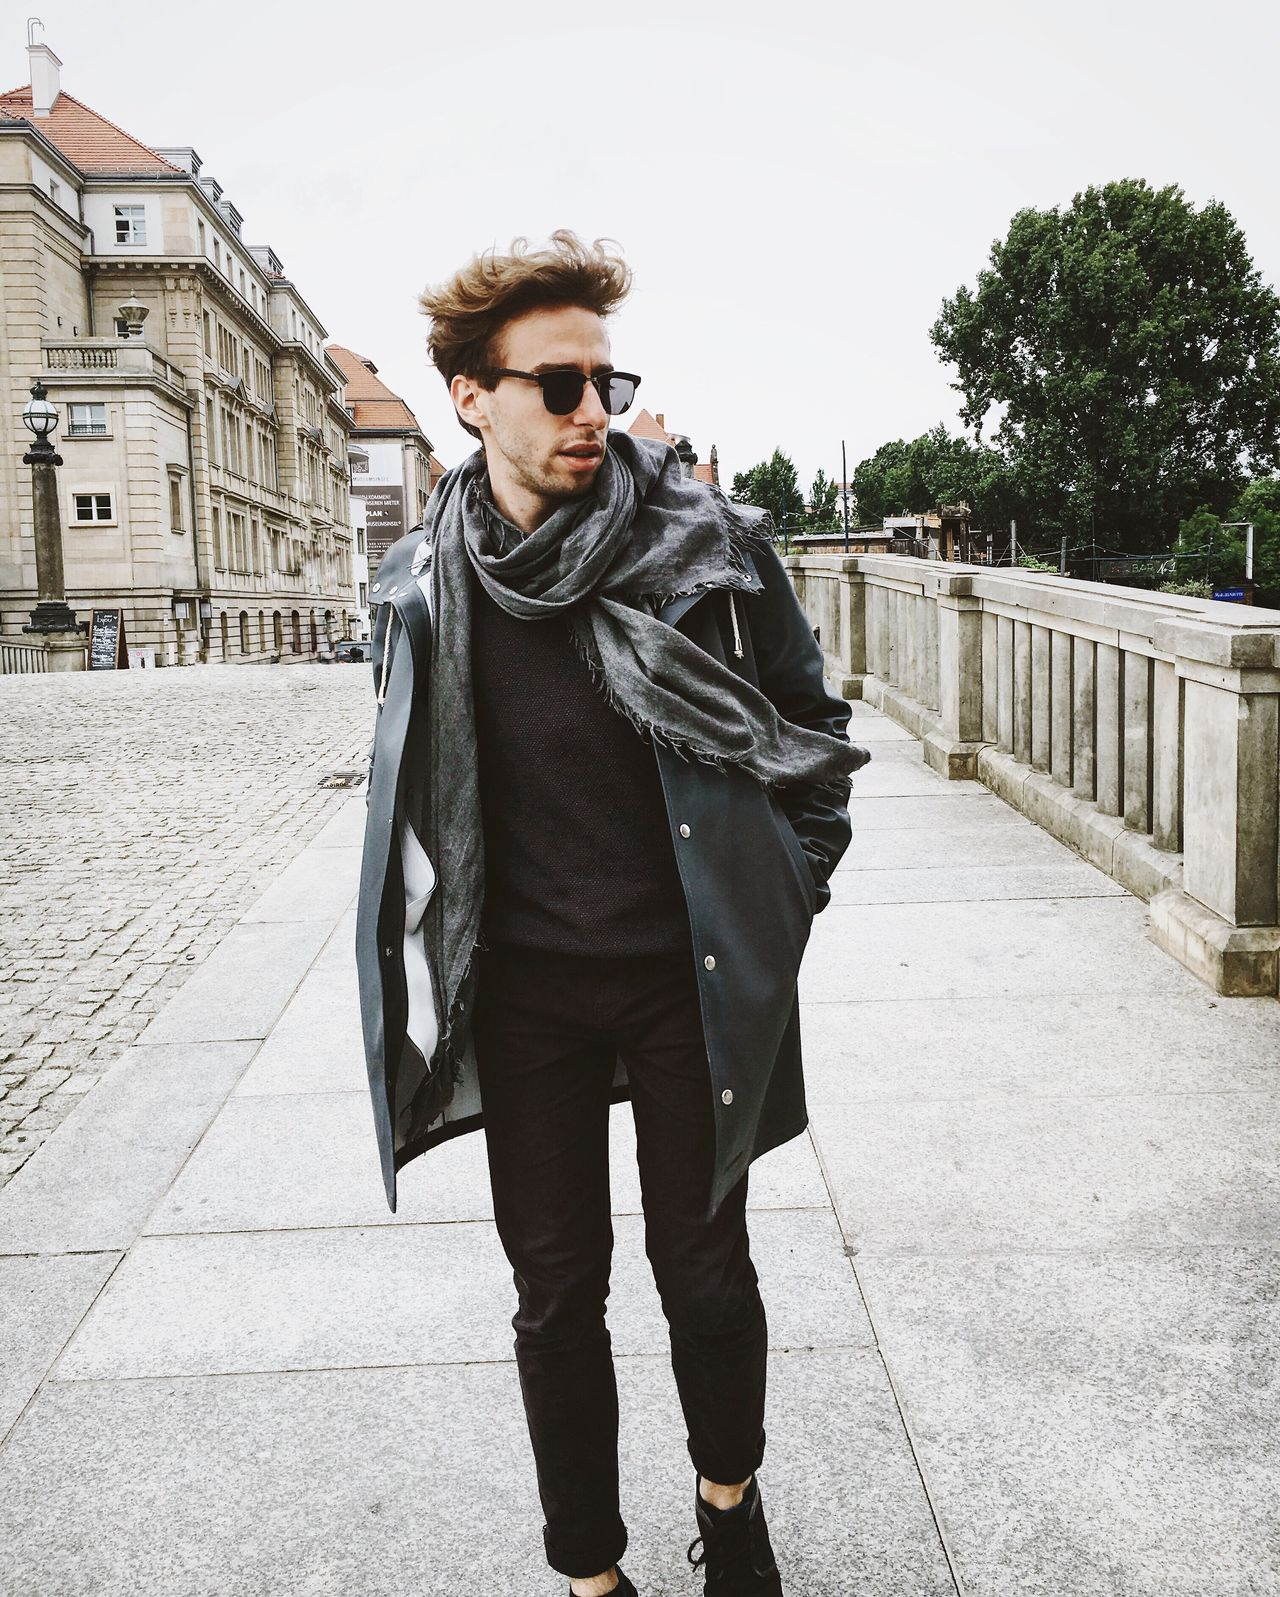 summeroutfit? thx @stutterheim Front View One Person One Man Only Young Adult Day Fashion Young Men City Portrait Well-dressed Fashion Sunglasses Grey Jackets Rain Jacket Rainy Days Grey Day Black Trousers Windbreaker Walking Streetstyle Berlin Historical Building Shooting Style Cold Days